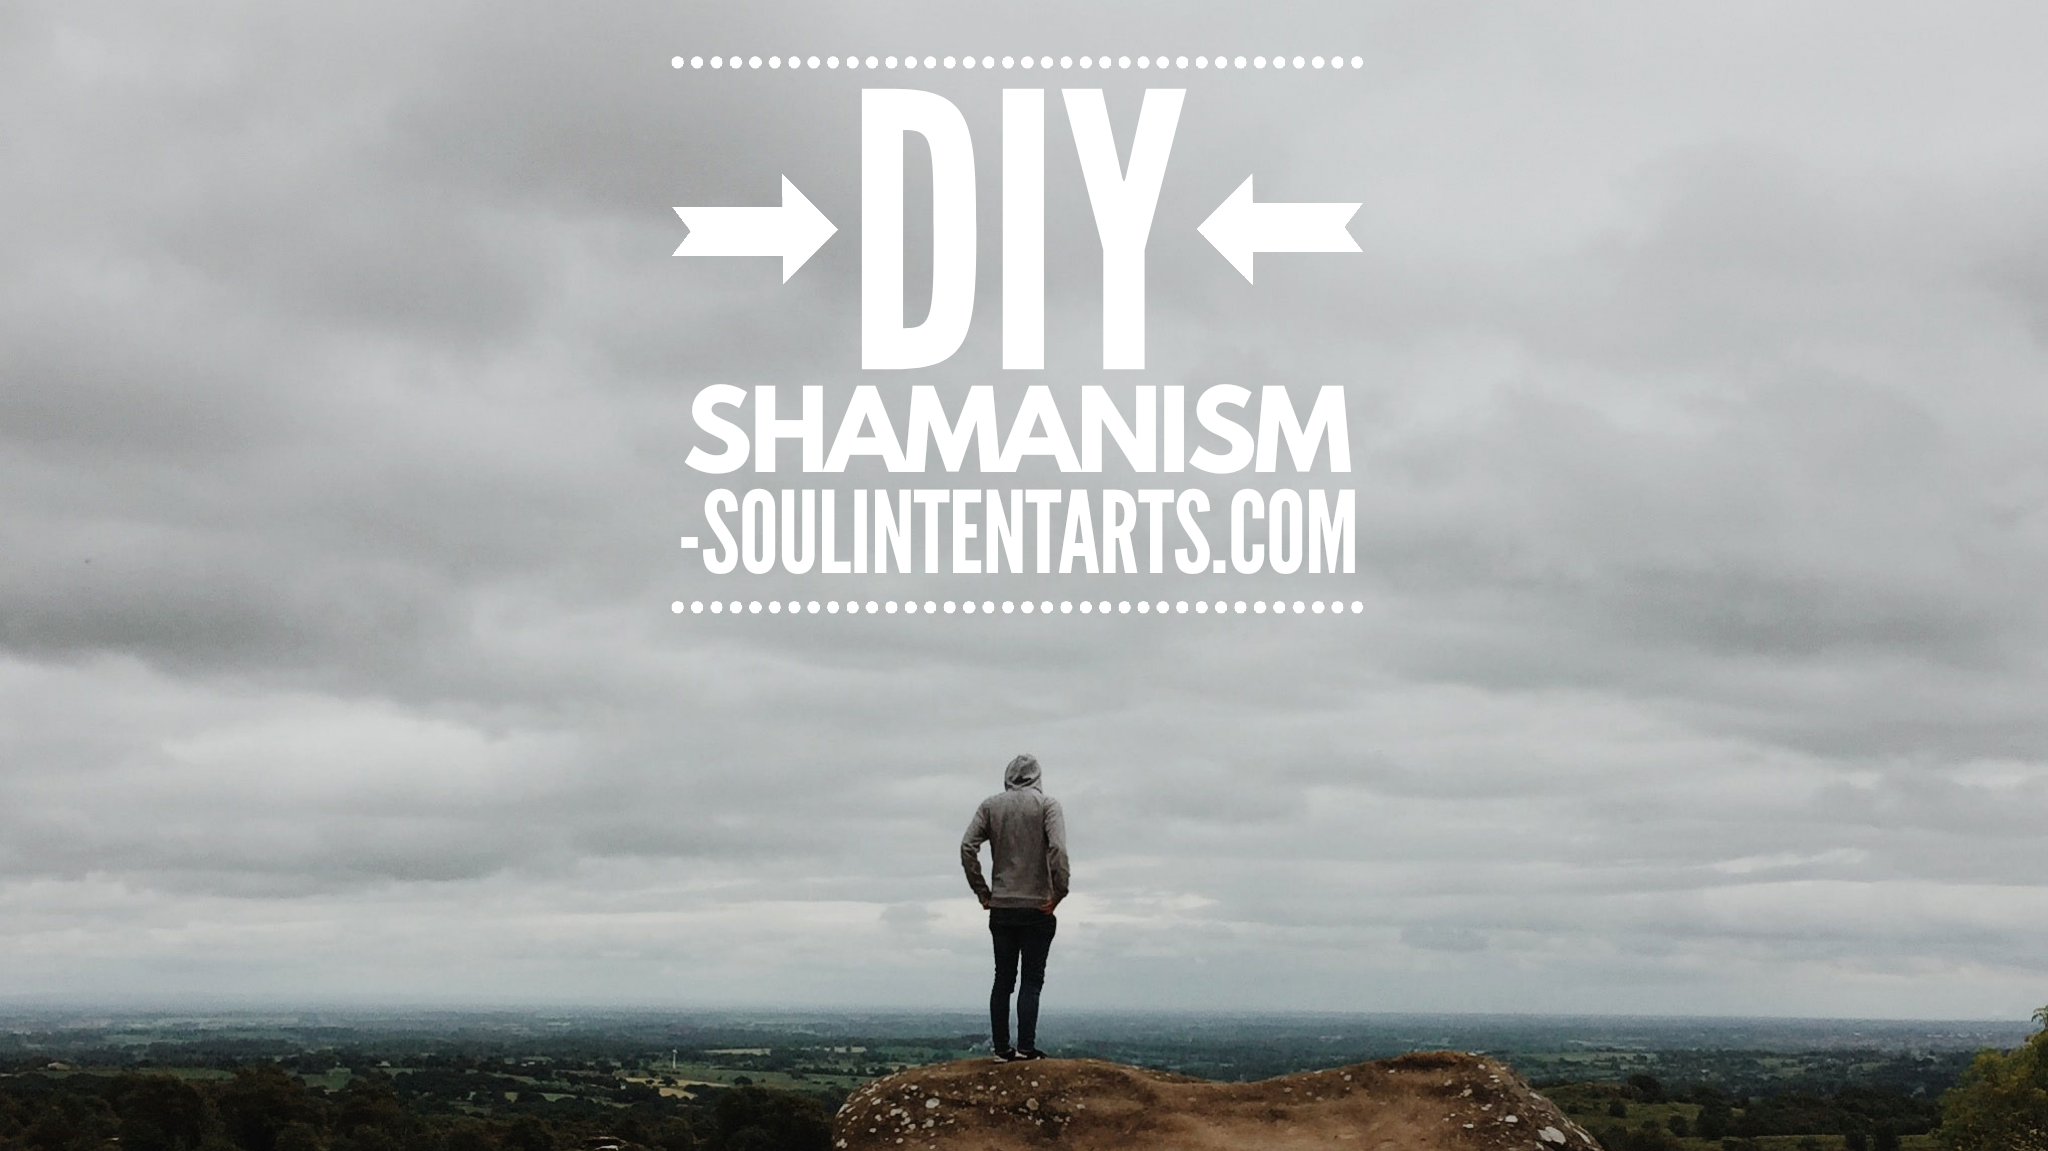 My Response to DIY Shamanism